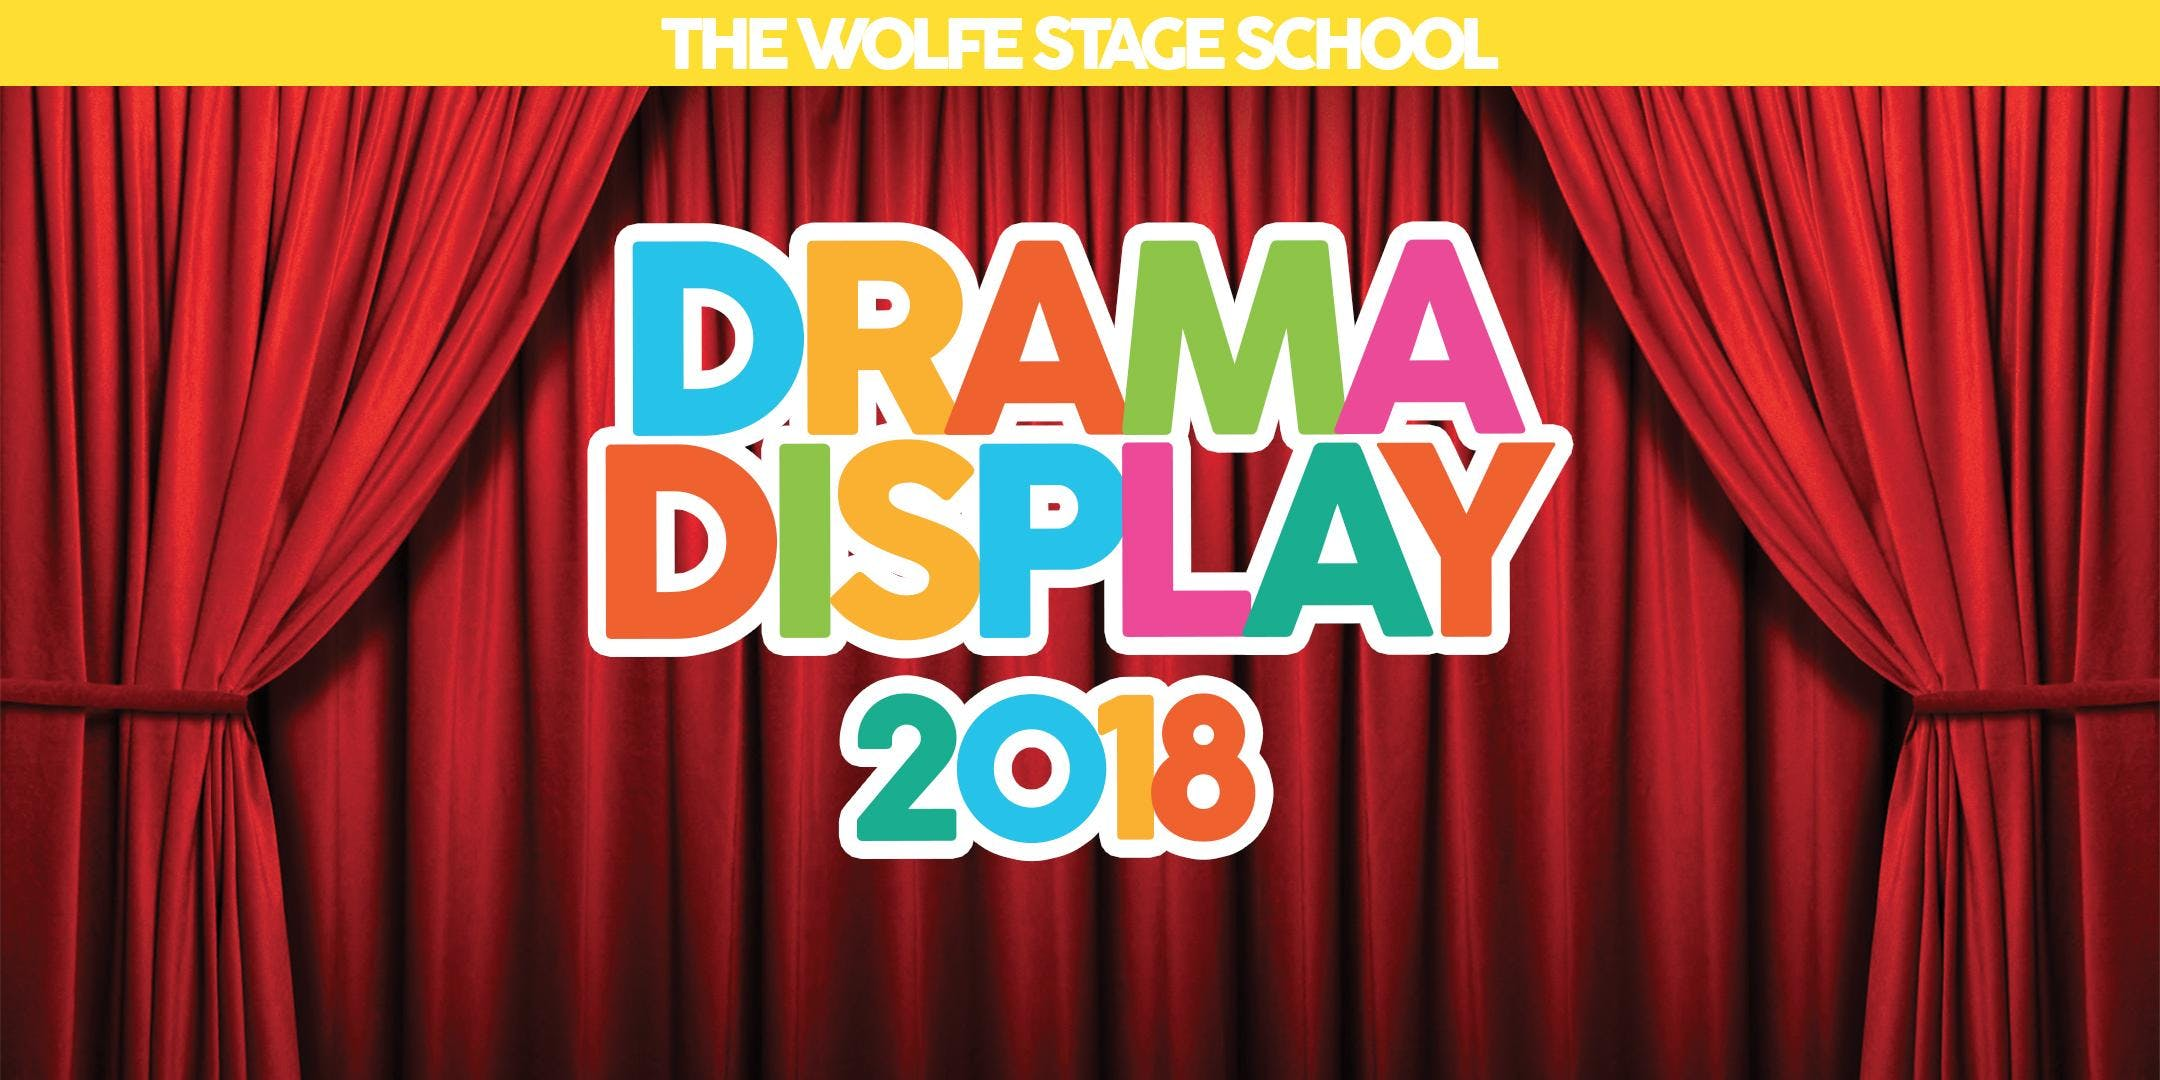 Wolfe Stage School - Drama Display 2018